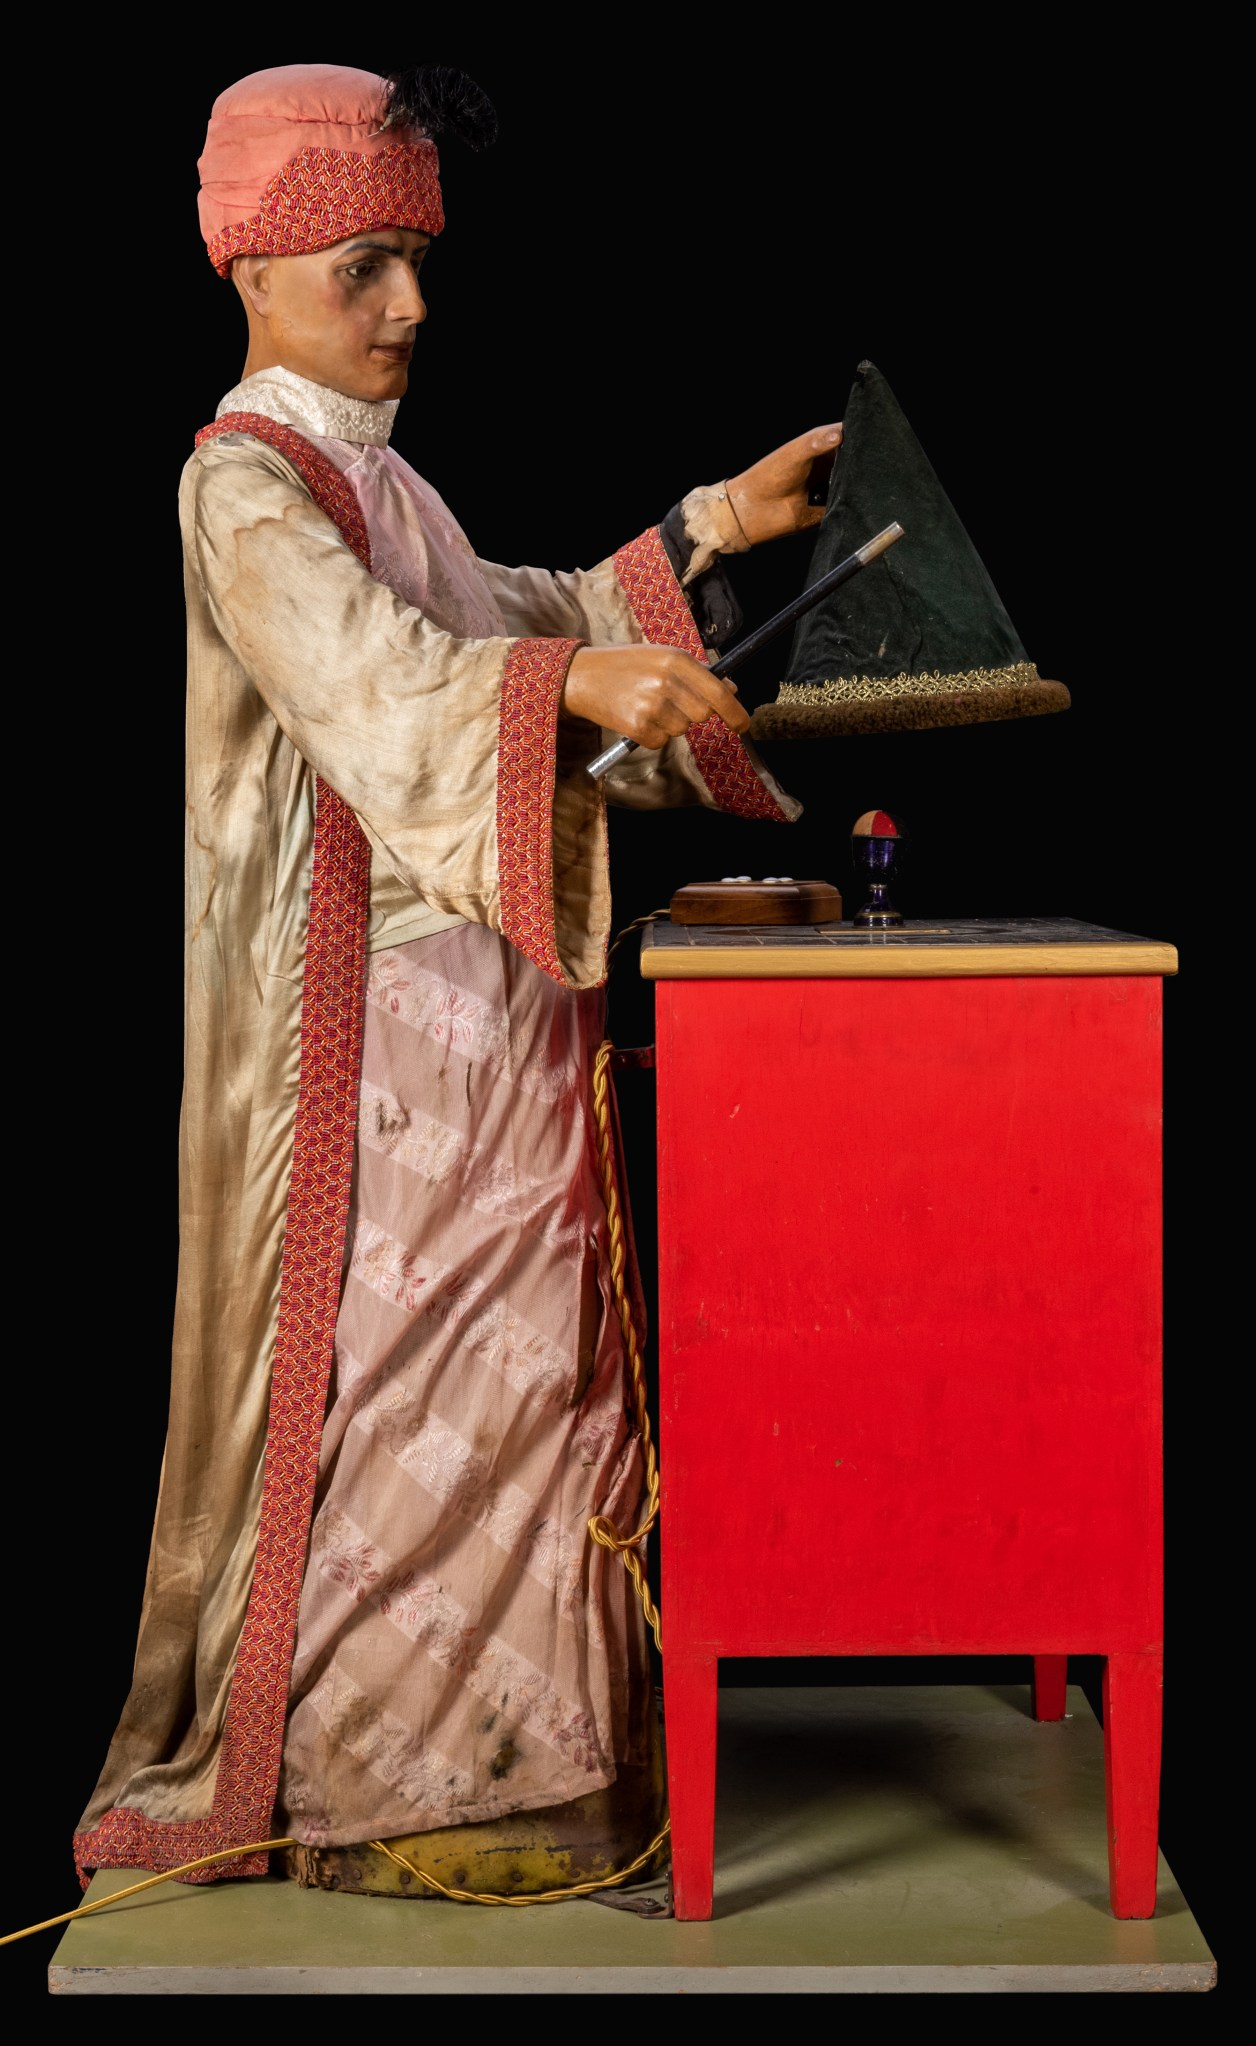 The magician automaton from Sleuth, shown in full and in profile.